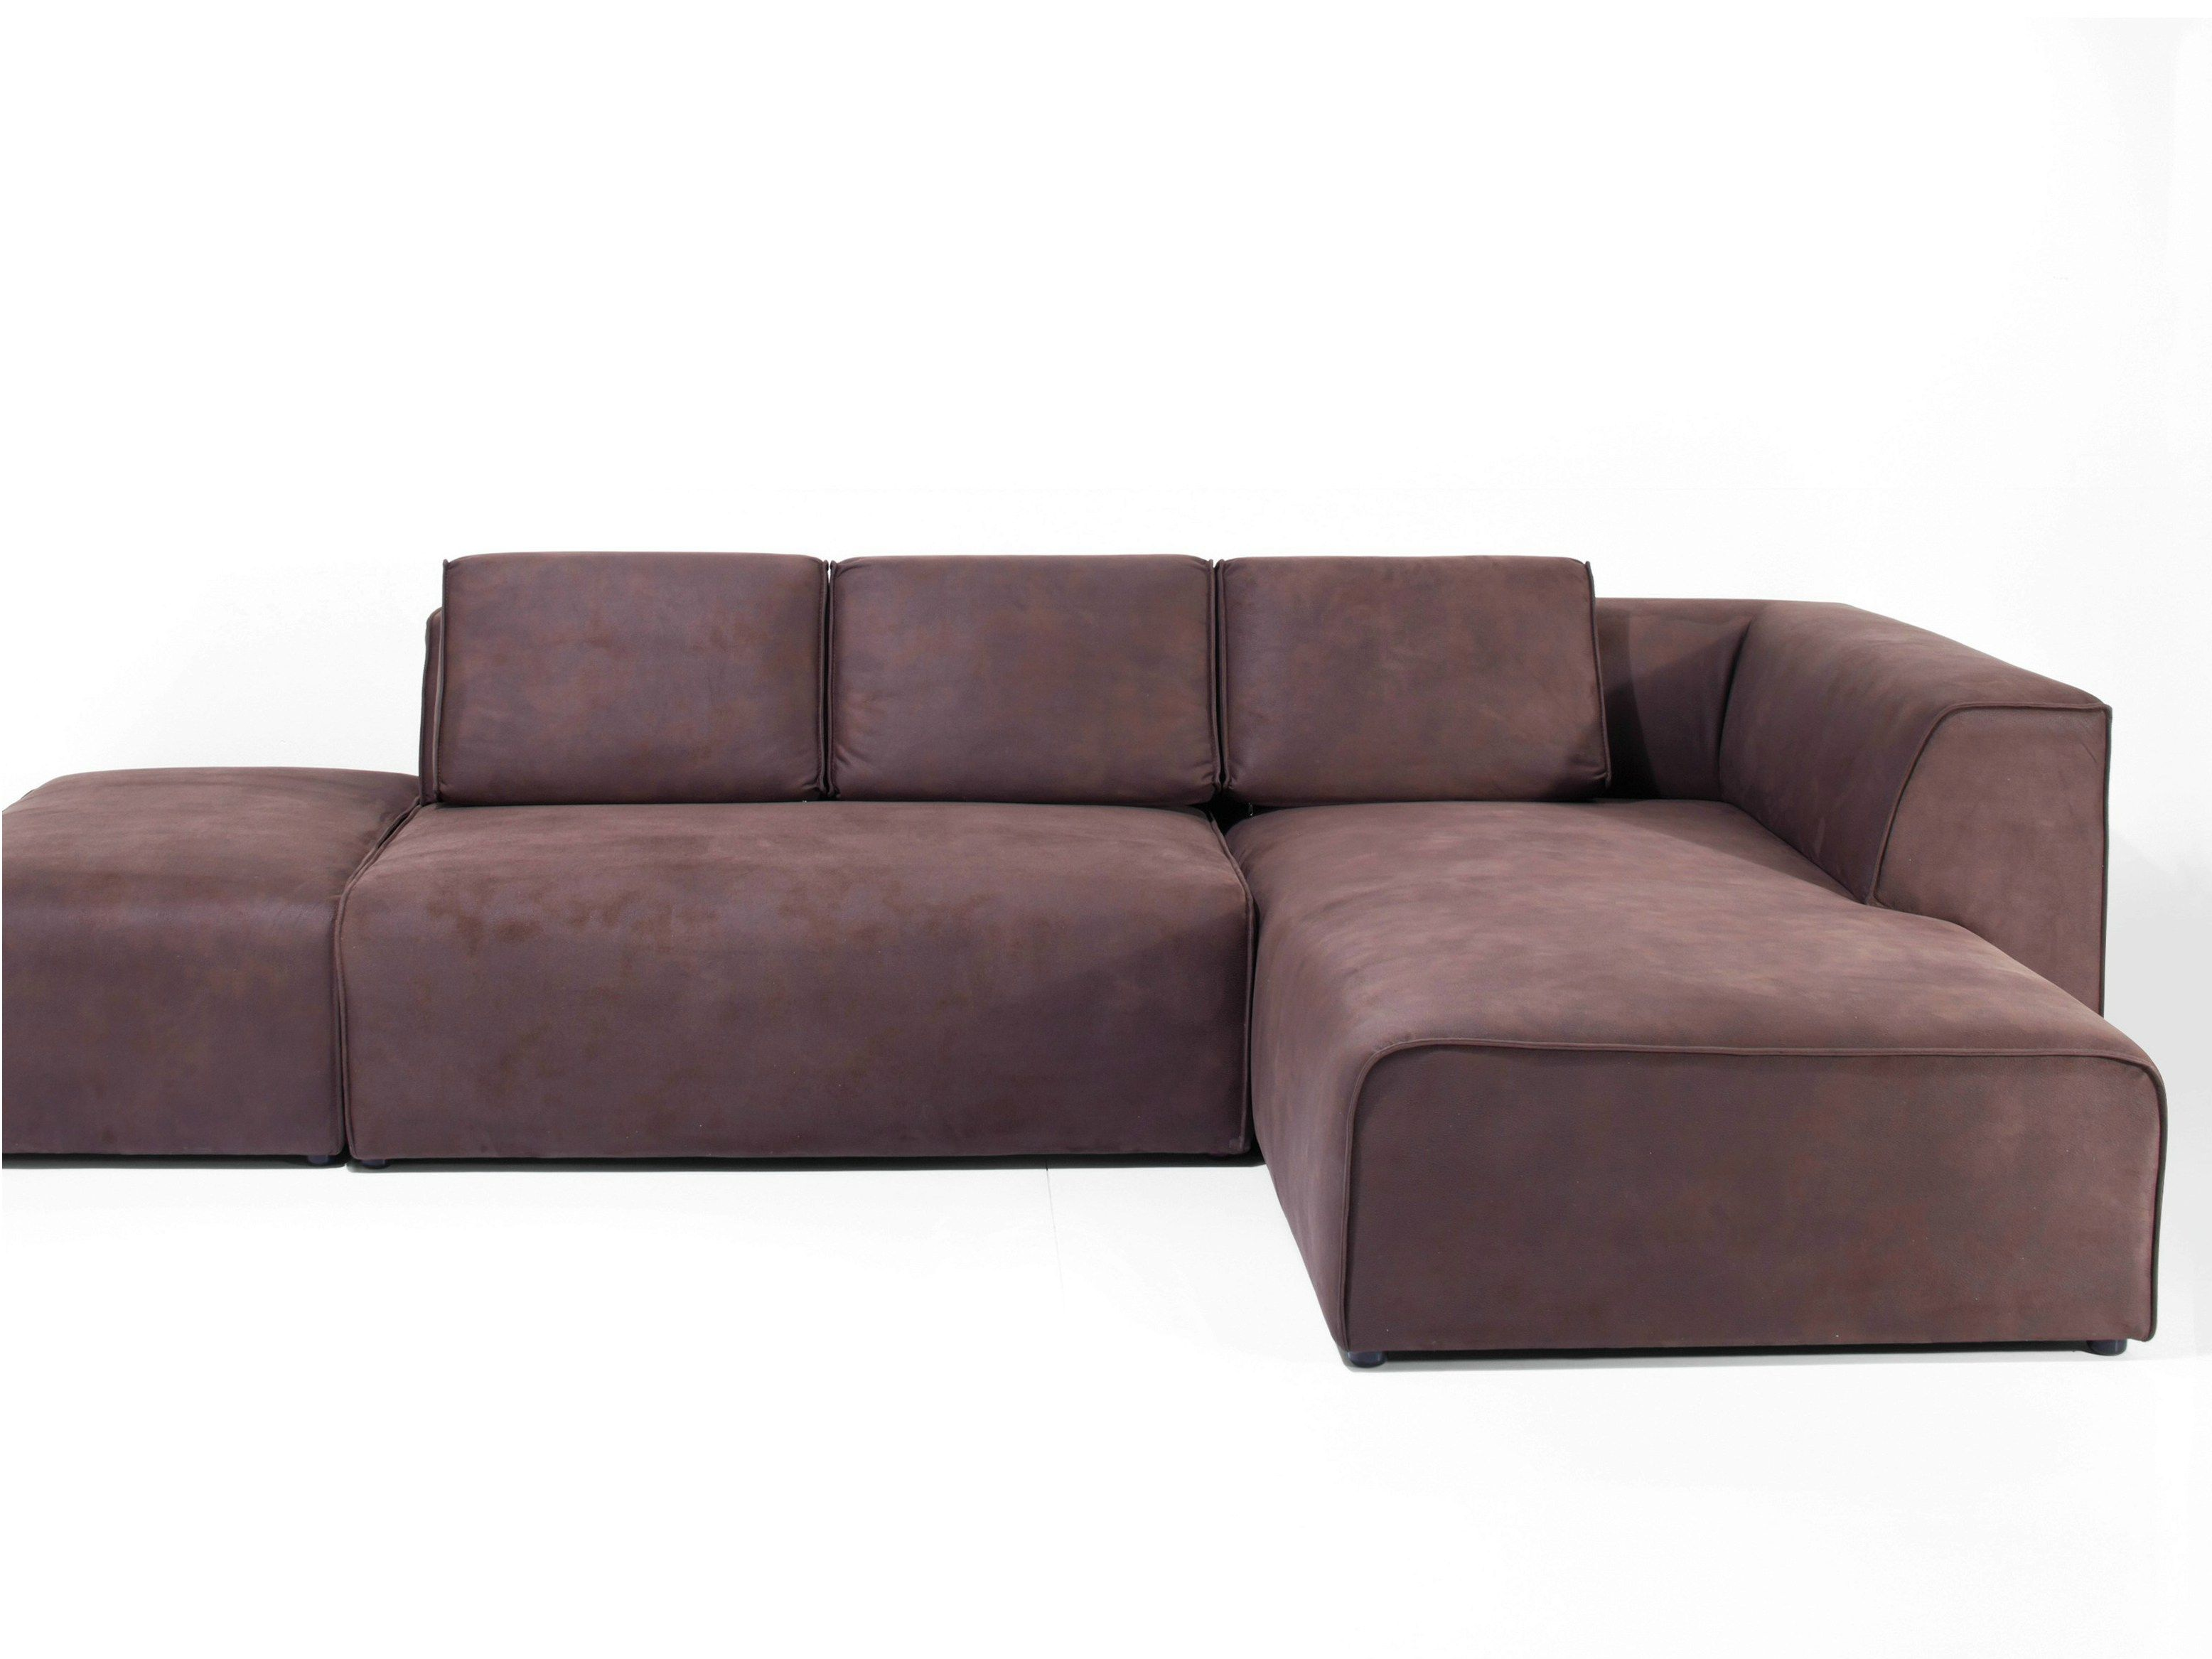 Ecksofa 200x200 3 Seater Corner Leather Sofa Infinity Antique By Kare Design